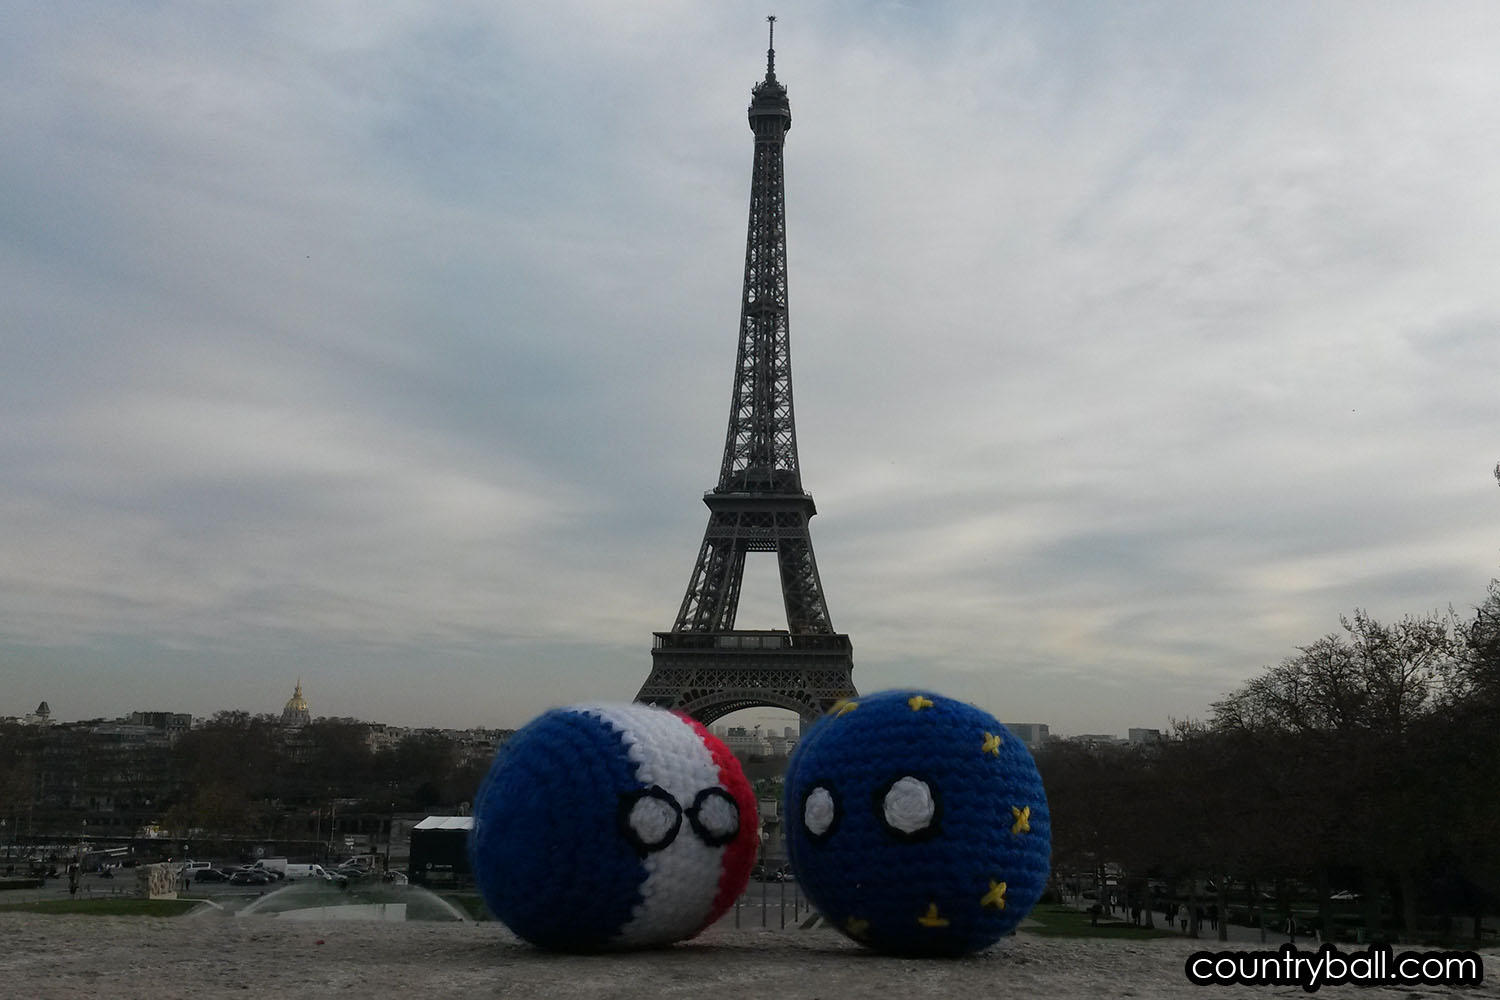 Franceball with his friend, EUBall in Paris